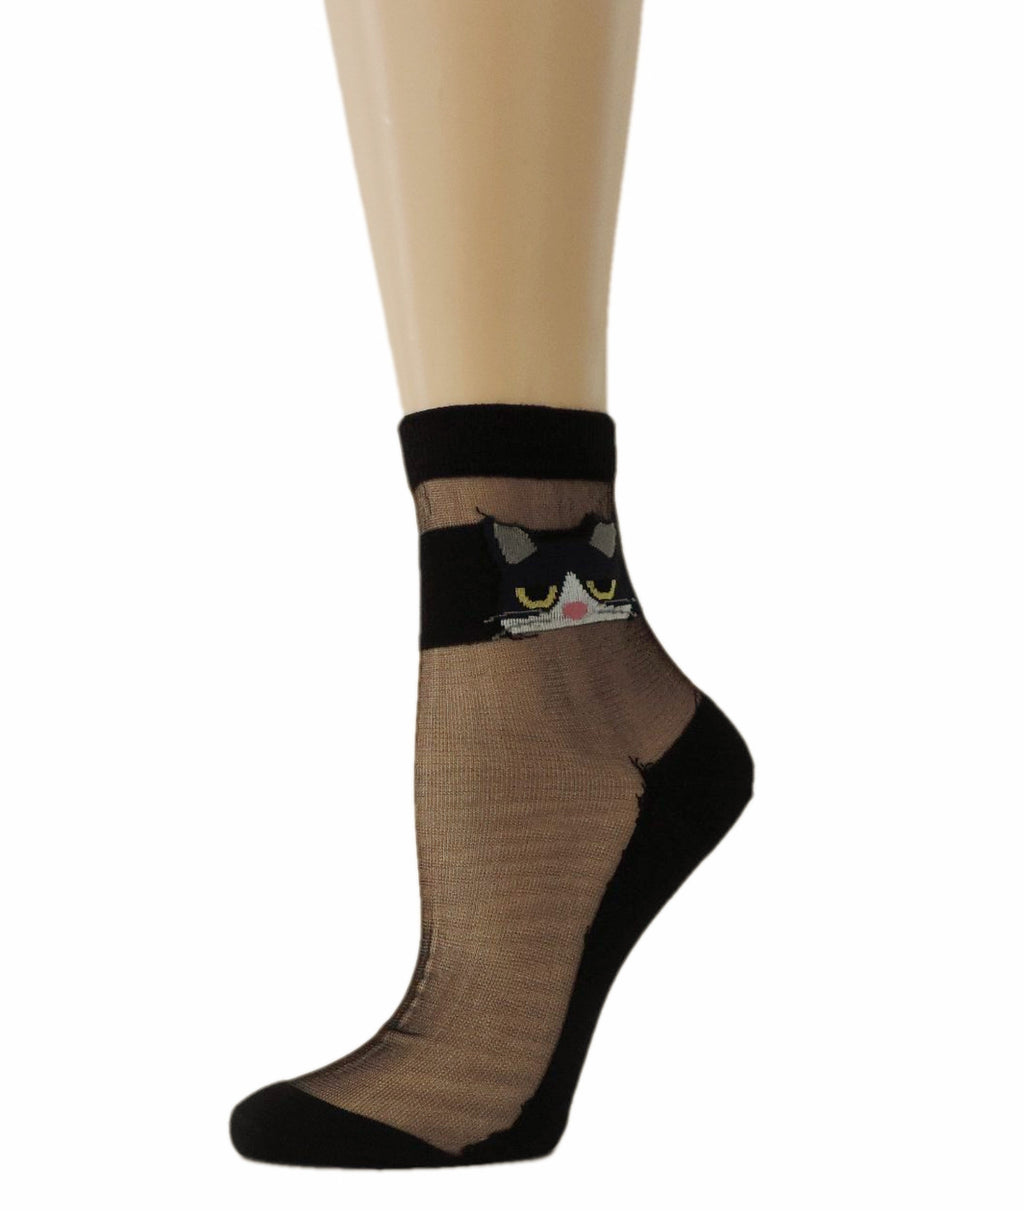 Kitty Eye Black Sheer Socks - Global Trendz Fashion®